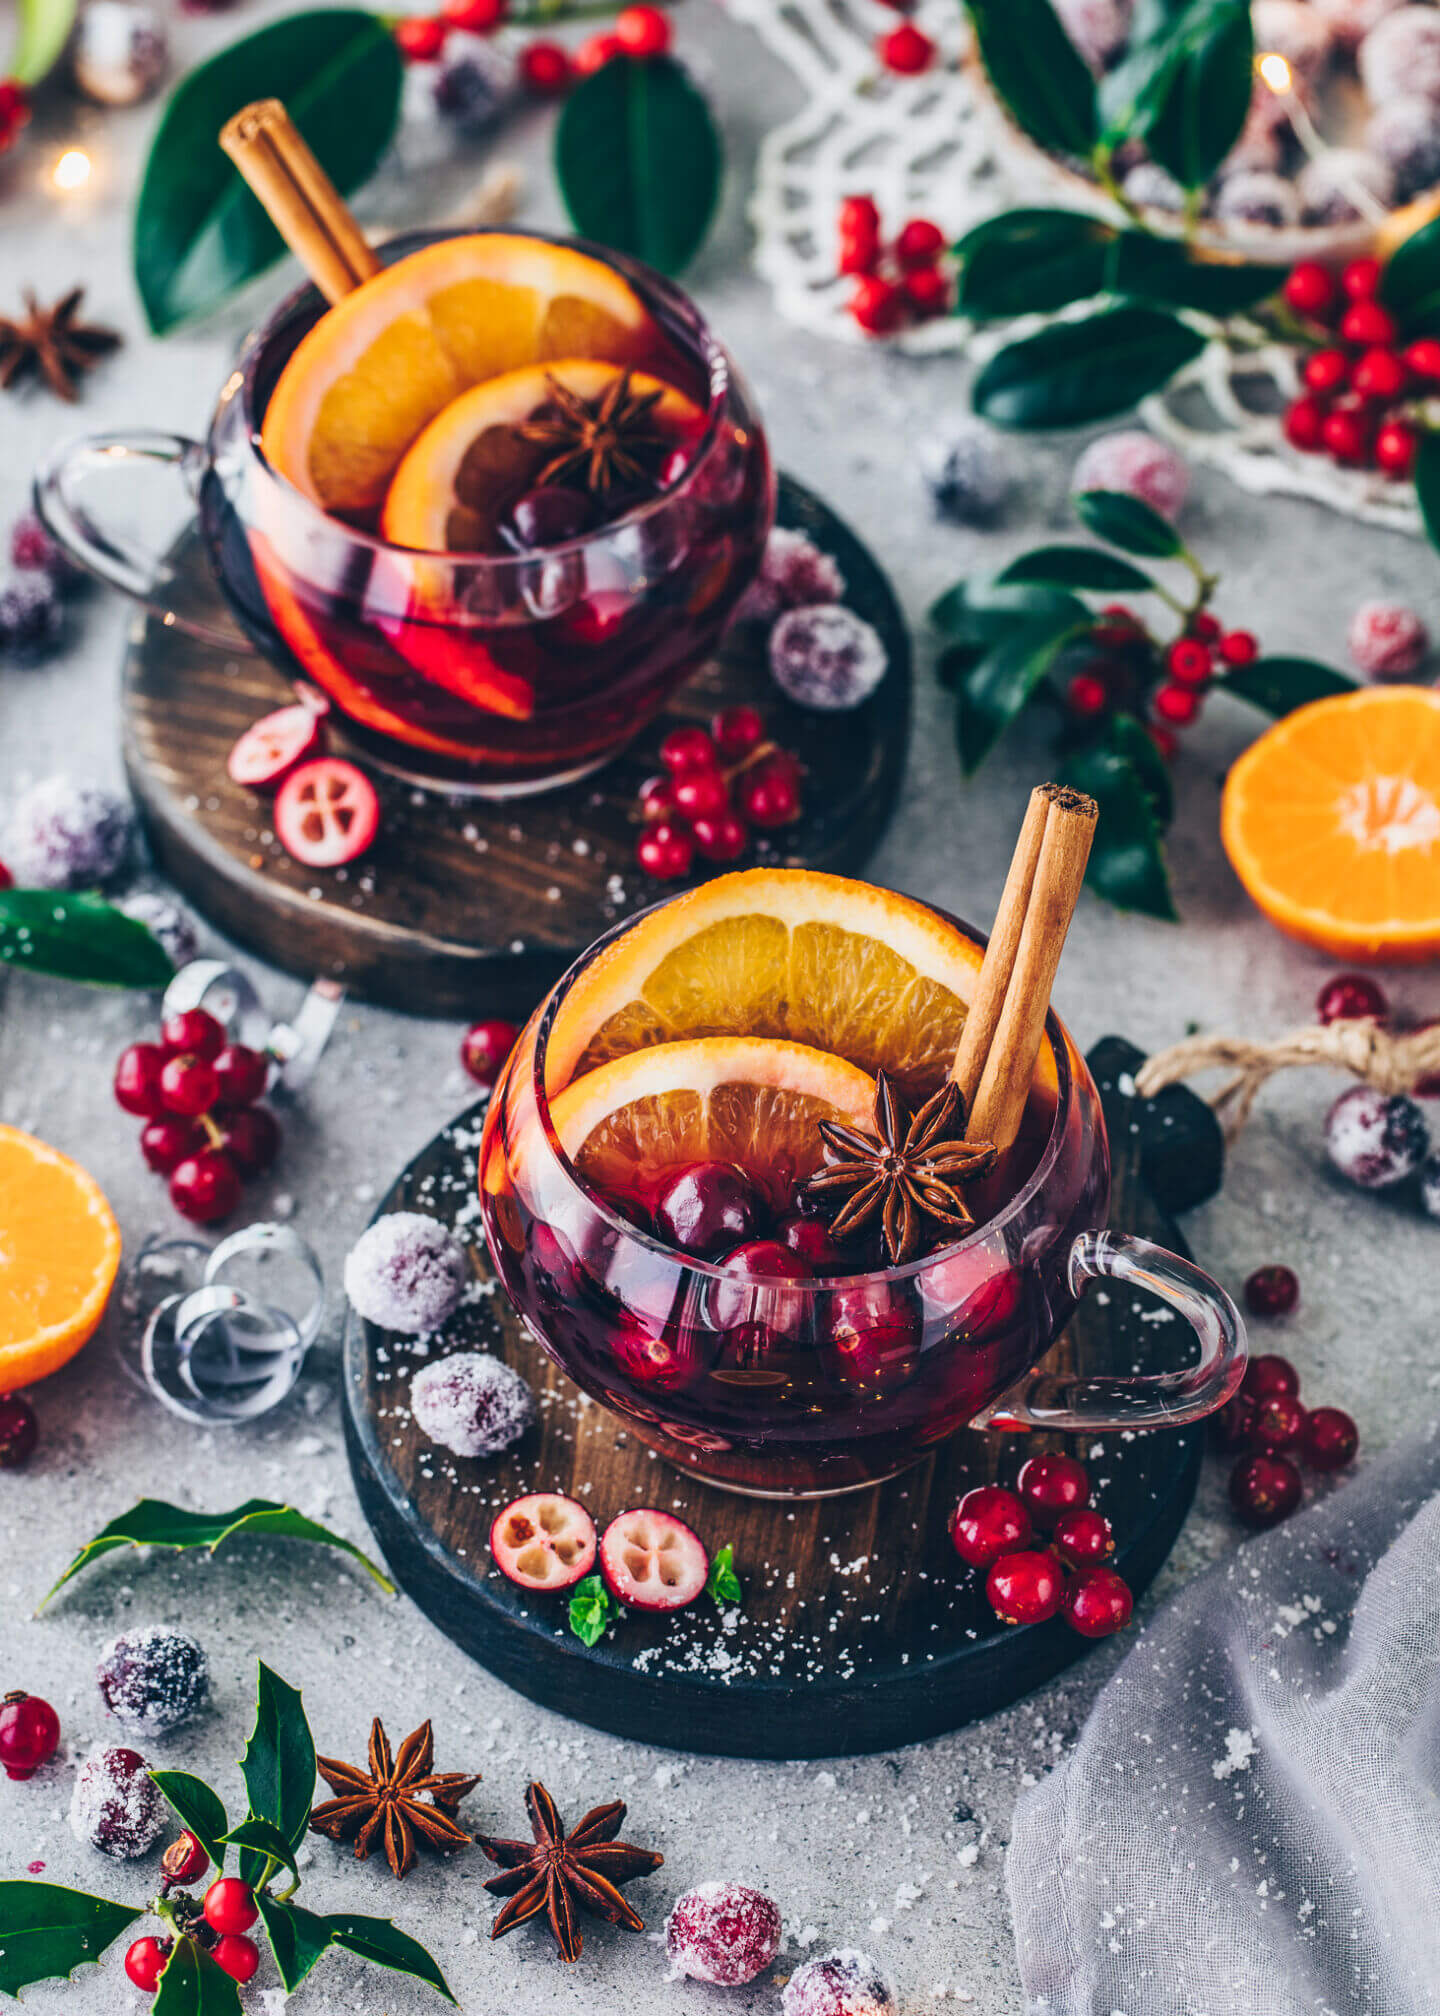 Homemade Mulled Wine with oranges, cranberries, star anise, and cinnamon